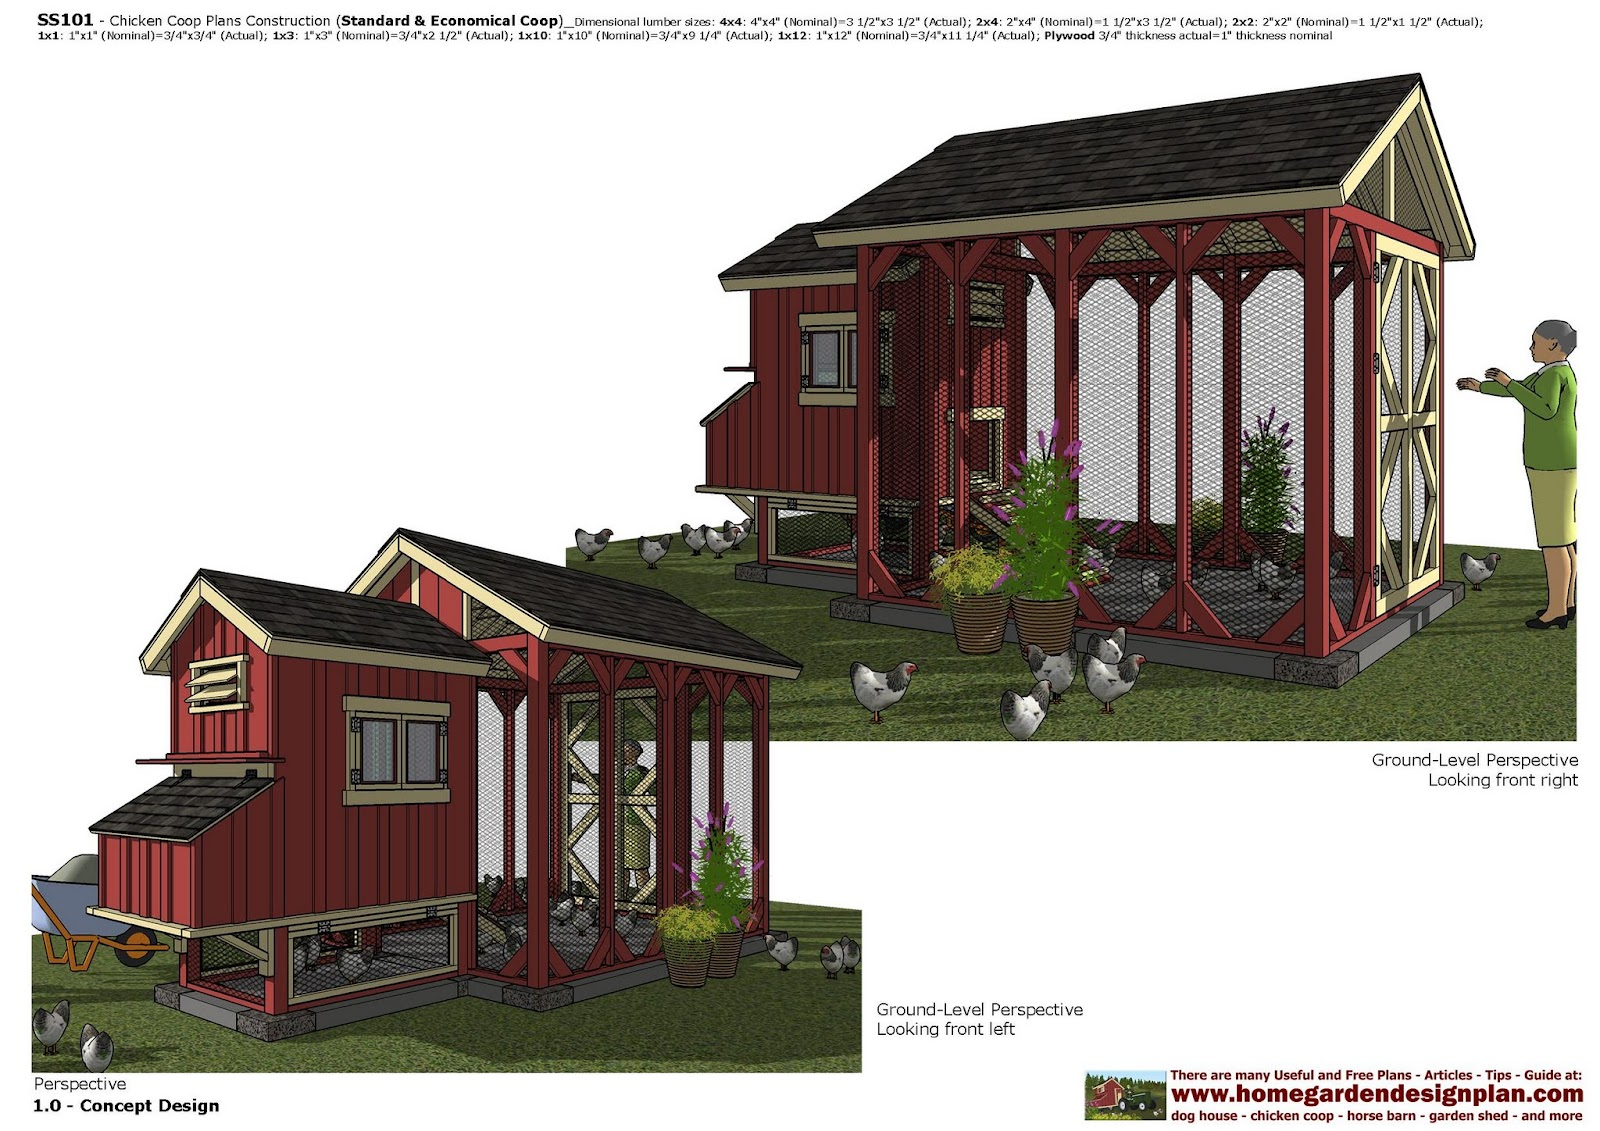 Home garden plans ss101 chicken coop plans construction Home run architecture